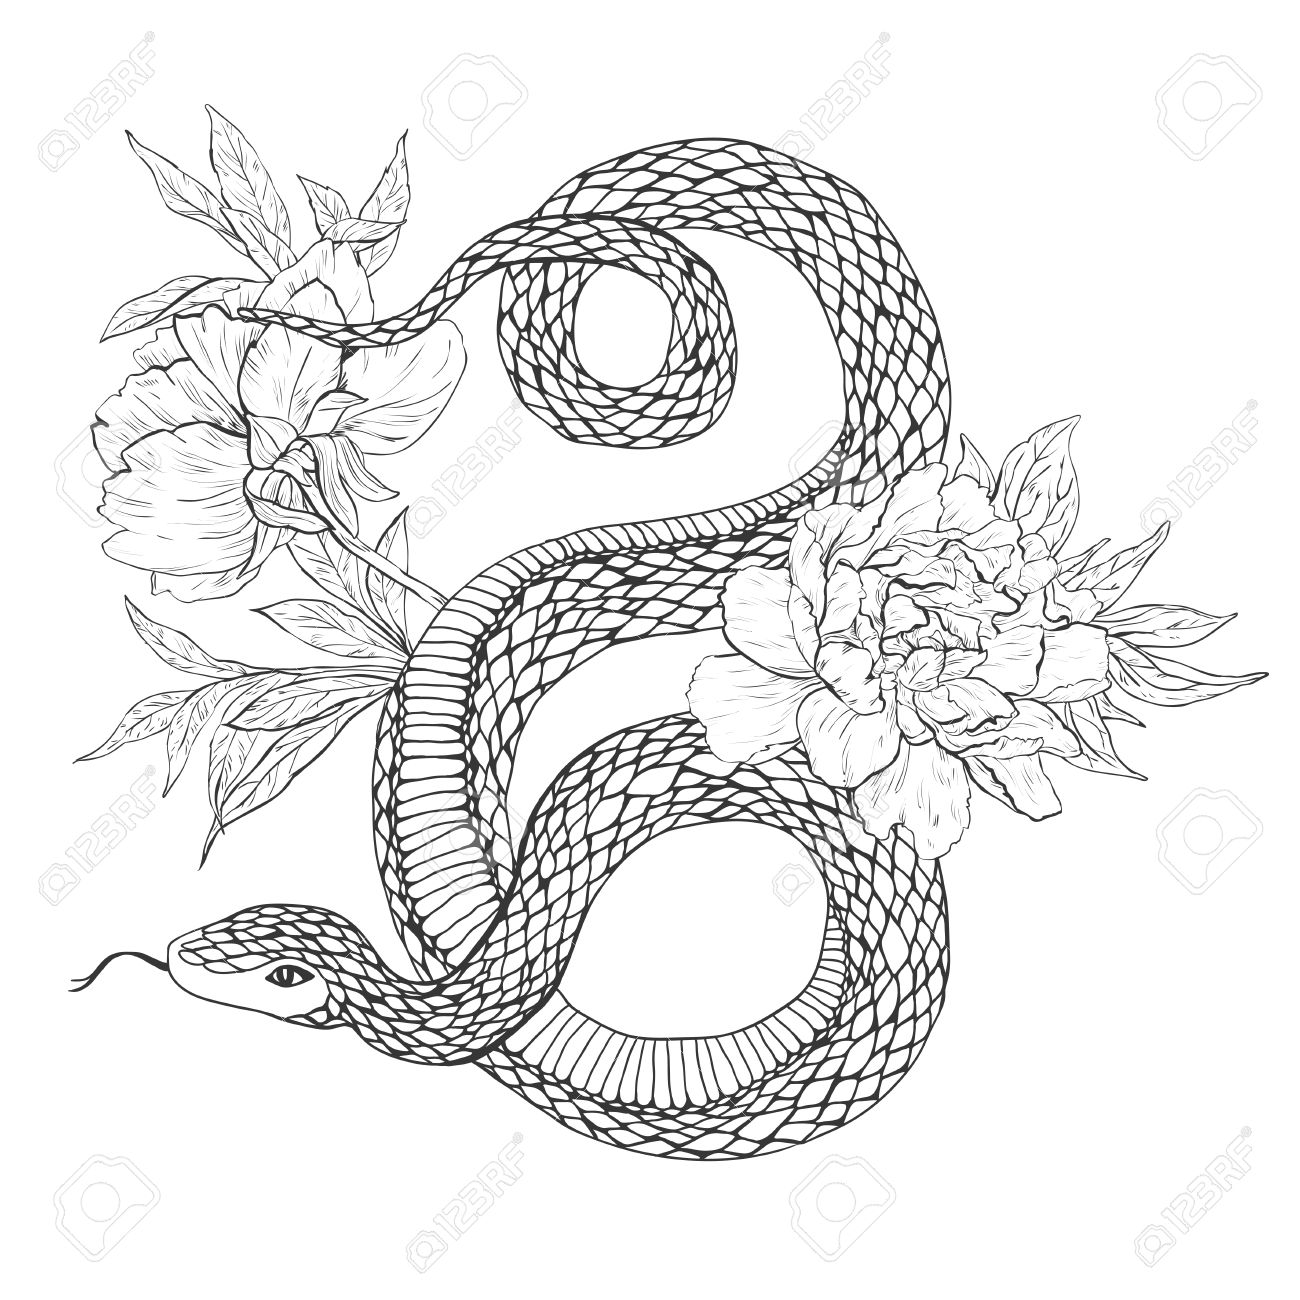 Snakes And Flowers. Tattoo Art, Coloring Books. Vintage Illustration ...